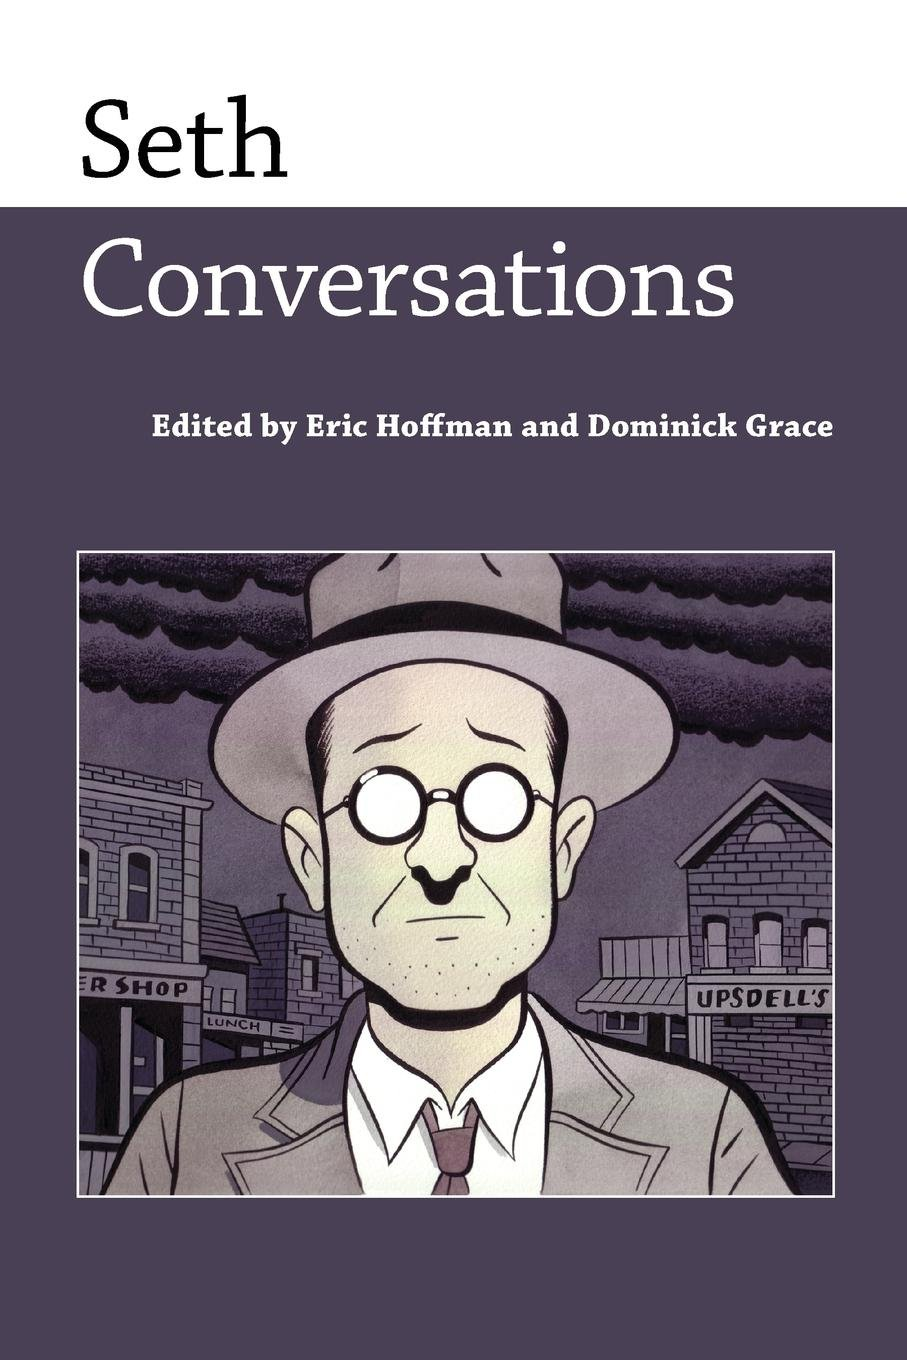 Download Seth: Conversations (Conversations with Comic Artists Series) ebook